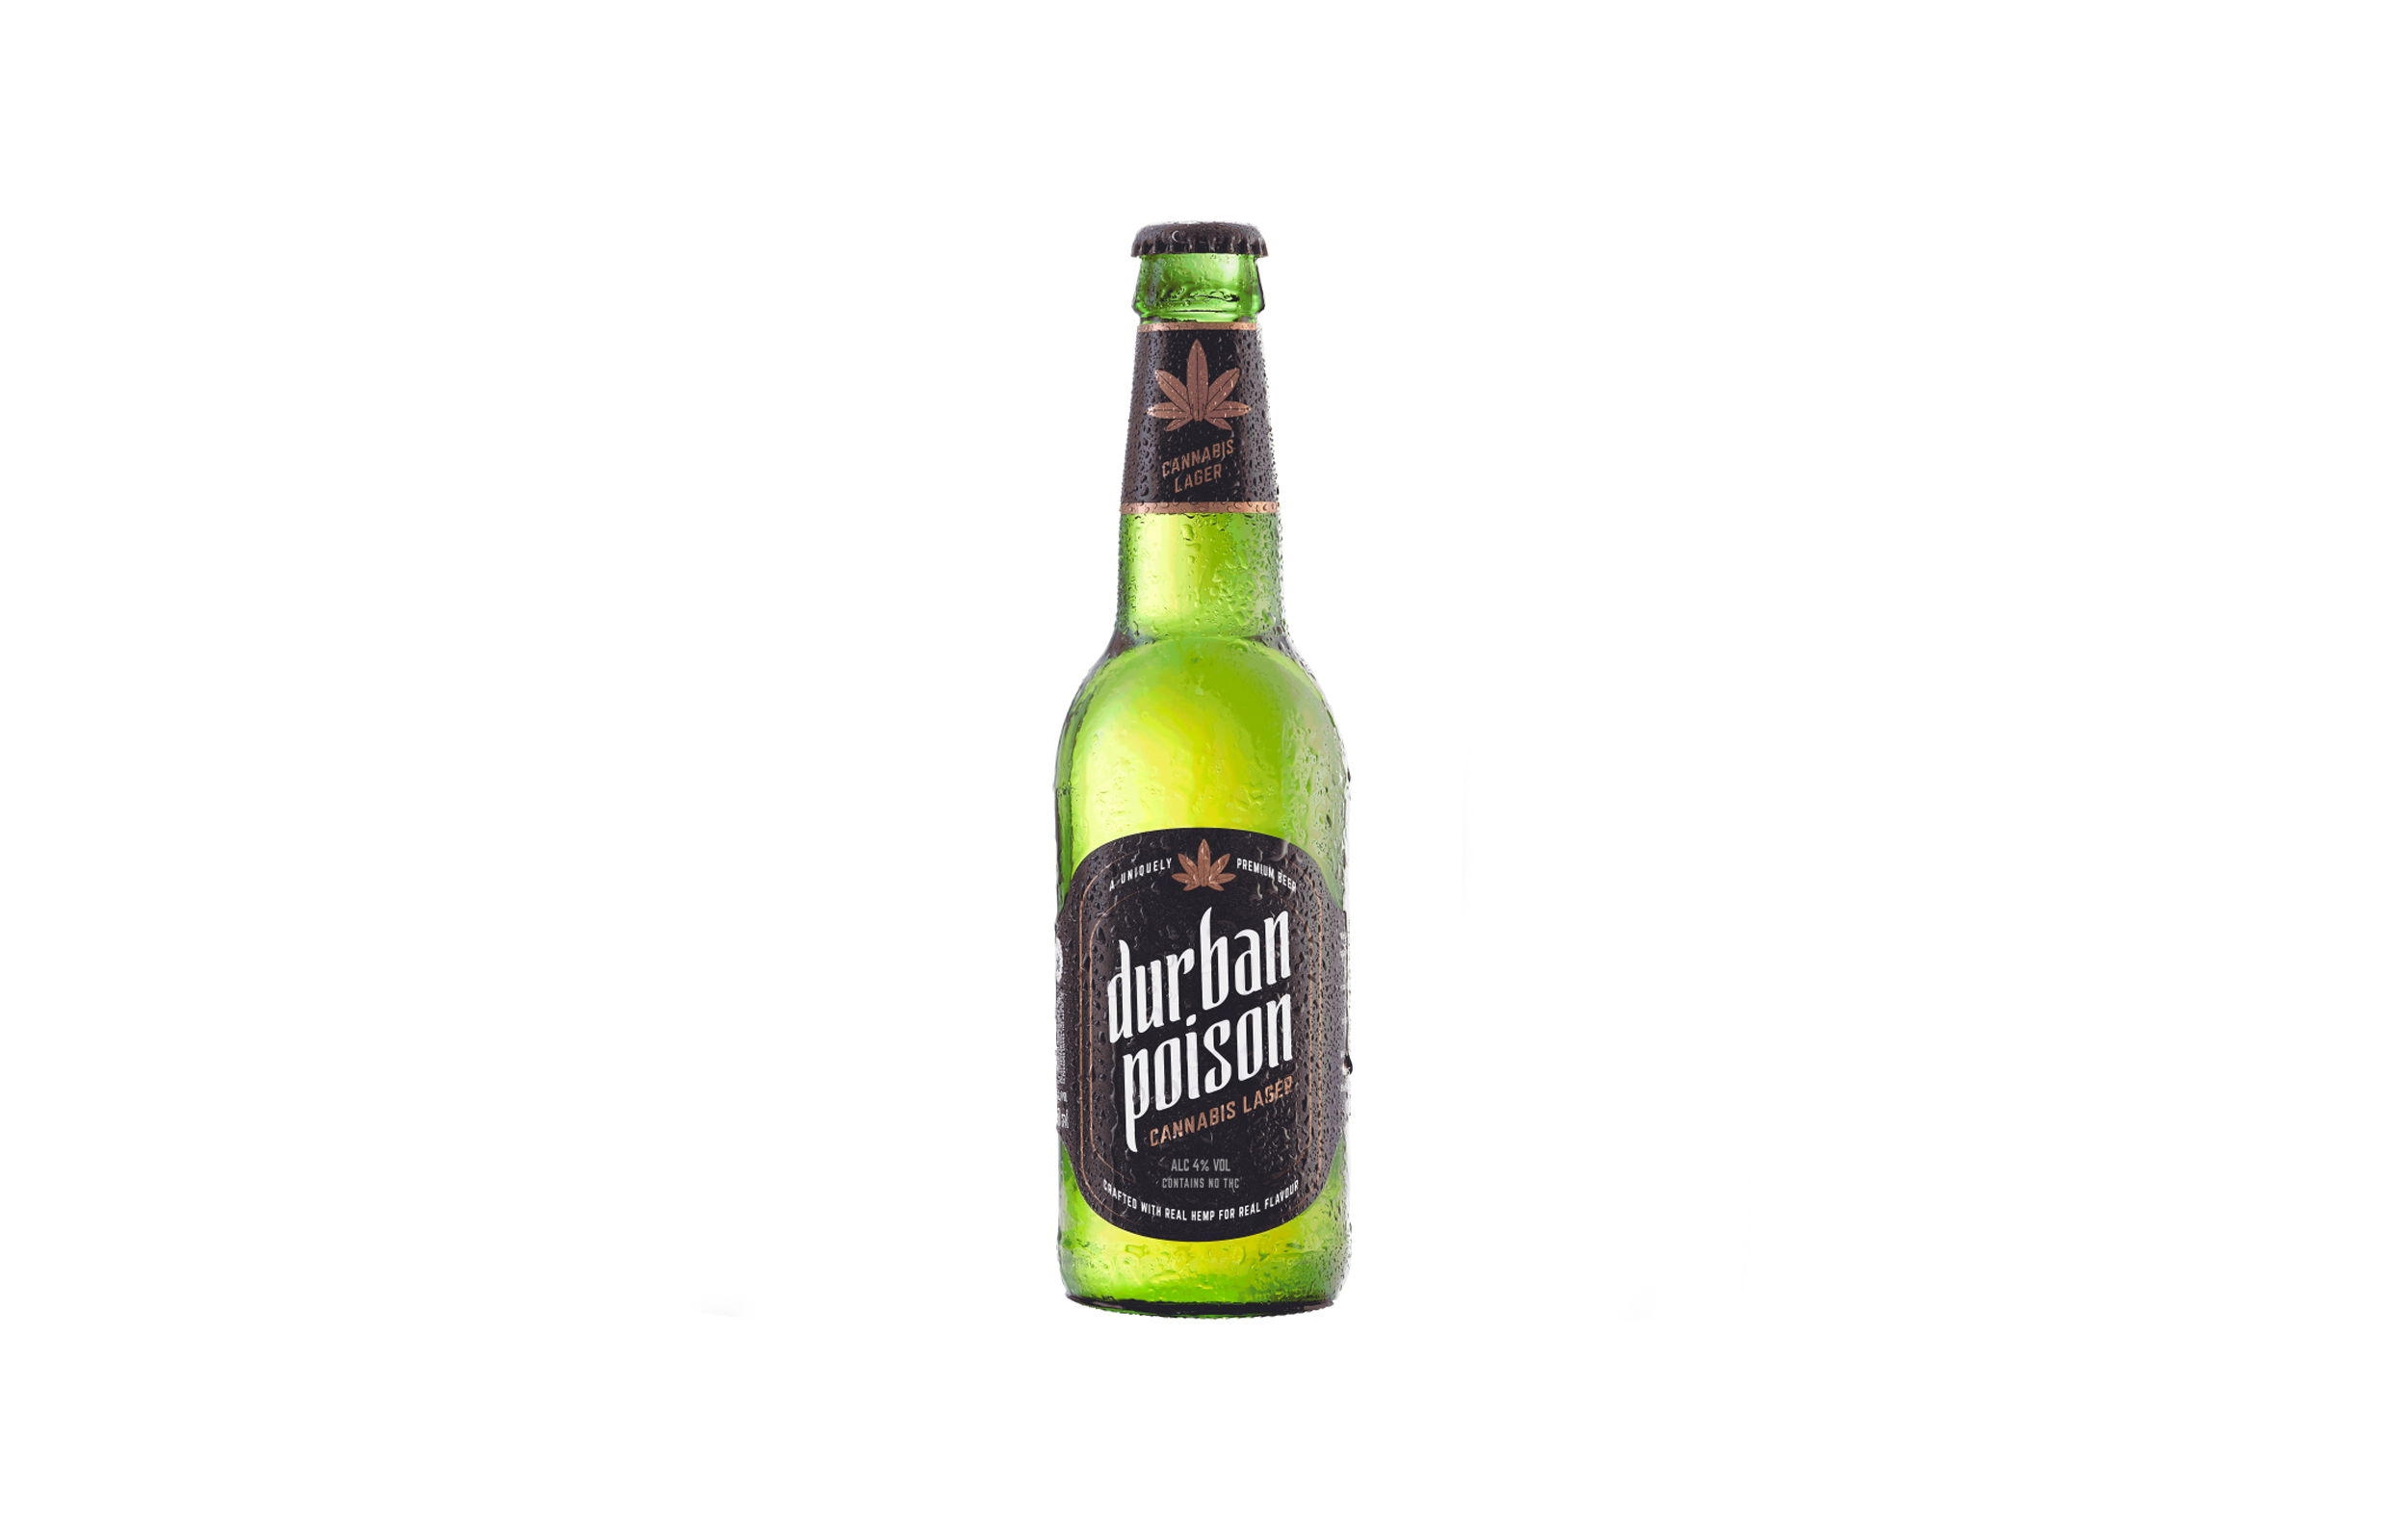 Best Weed Beer Poison City Lager2 From Heineken and Coors To Craft and Microbrews, This Is The Best Weed Beer In The World